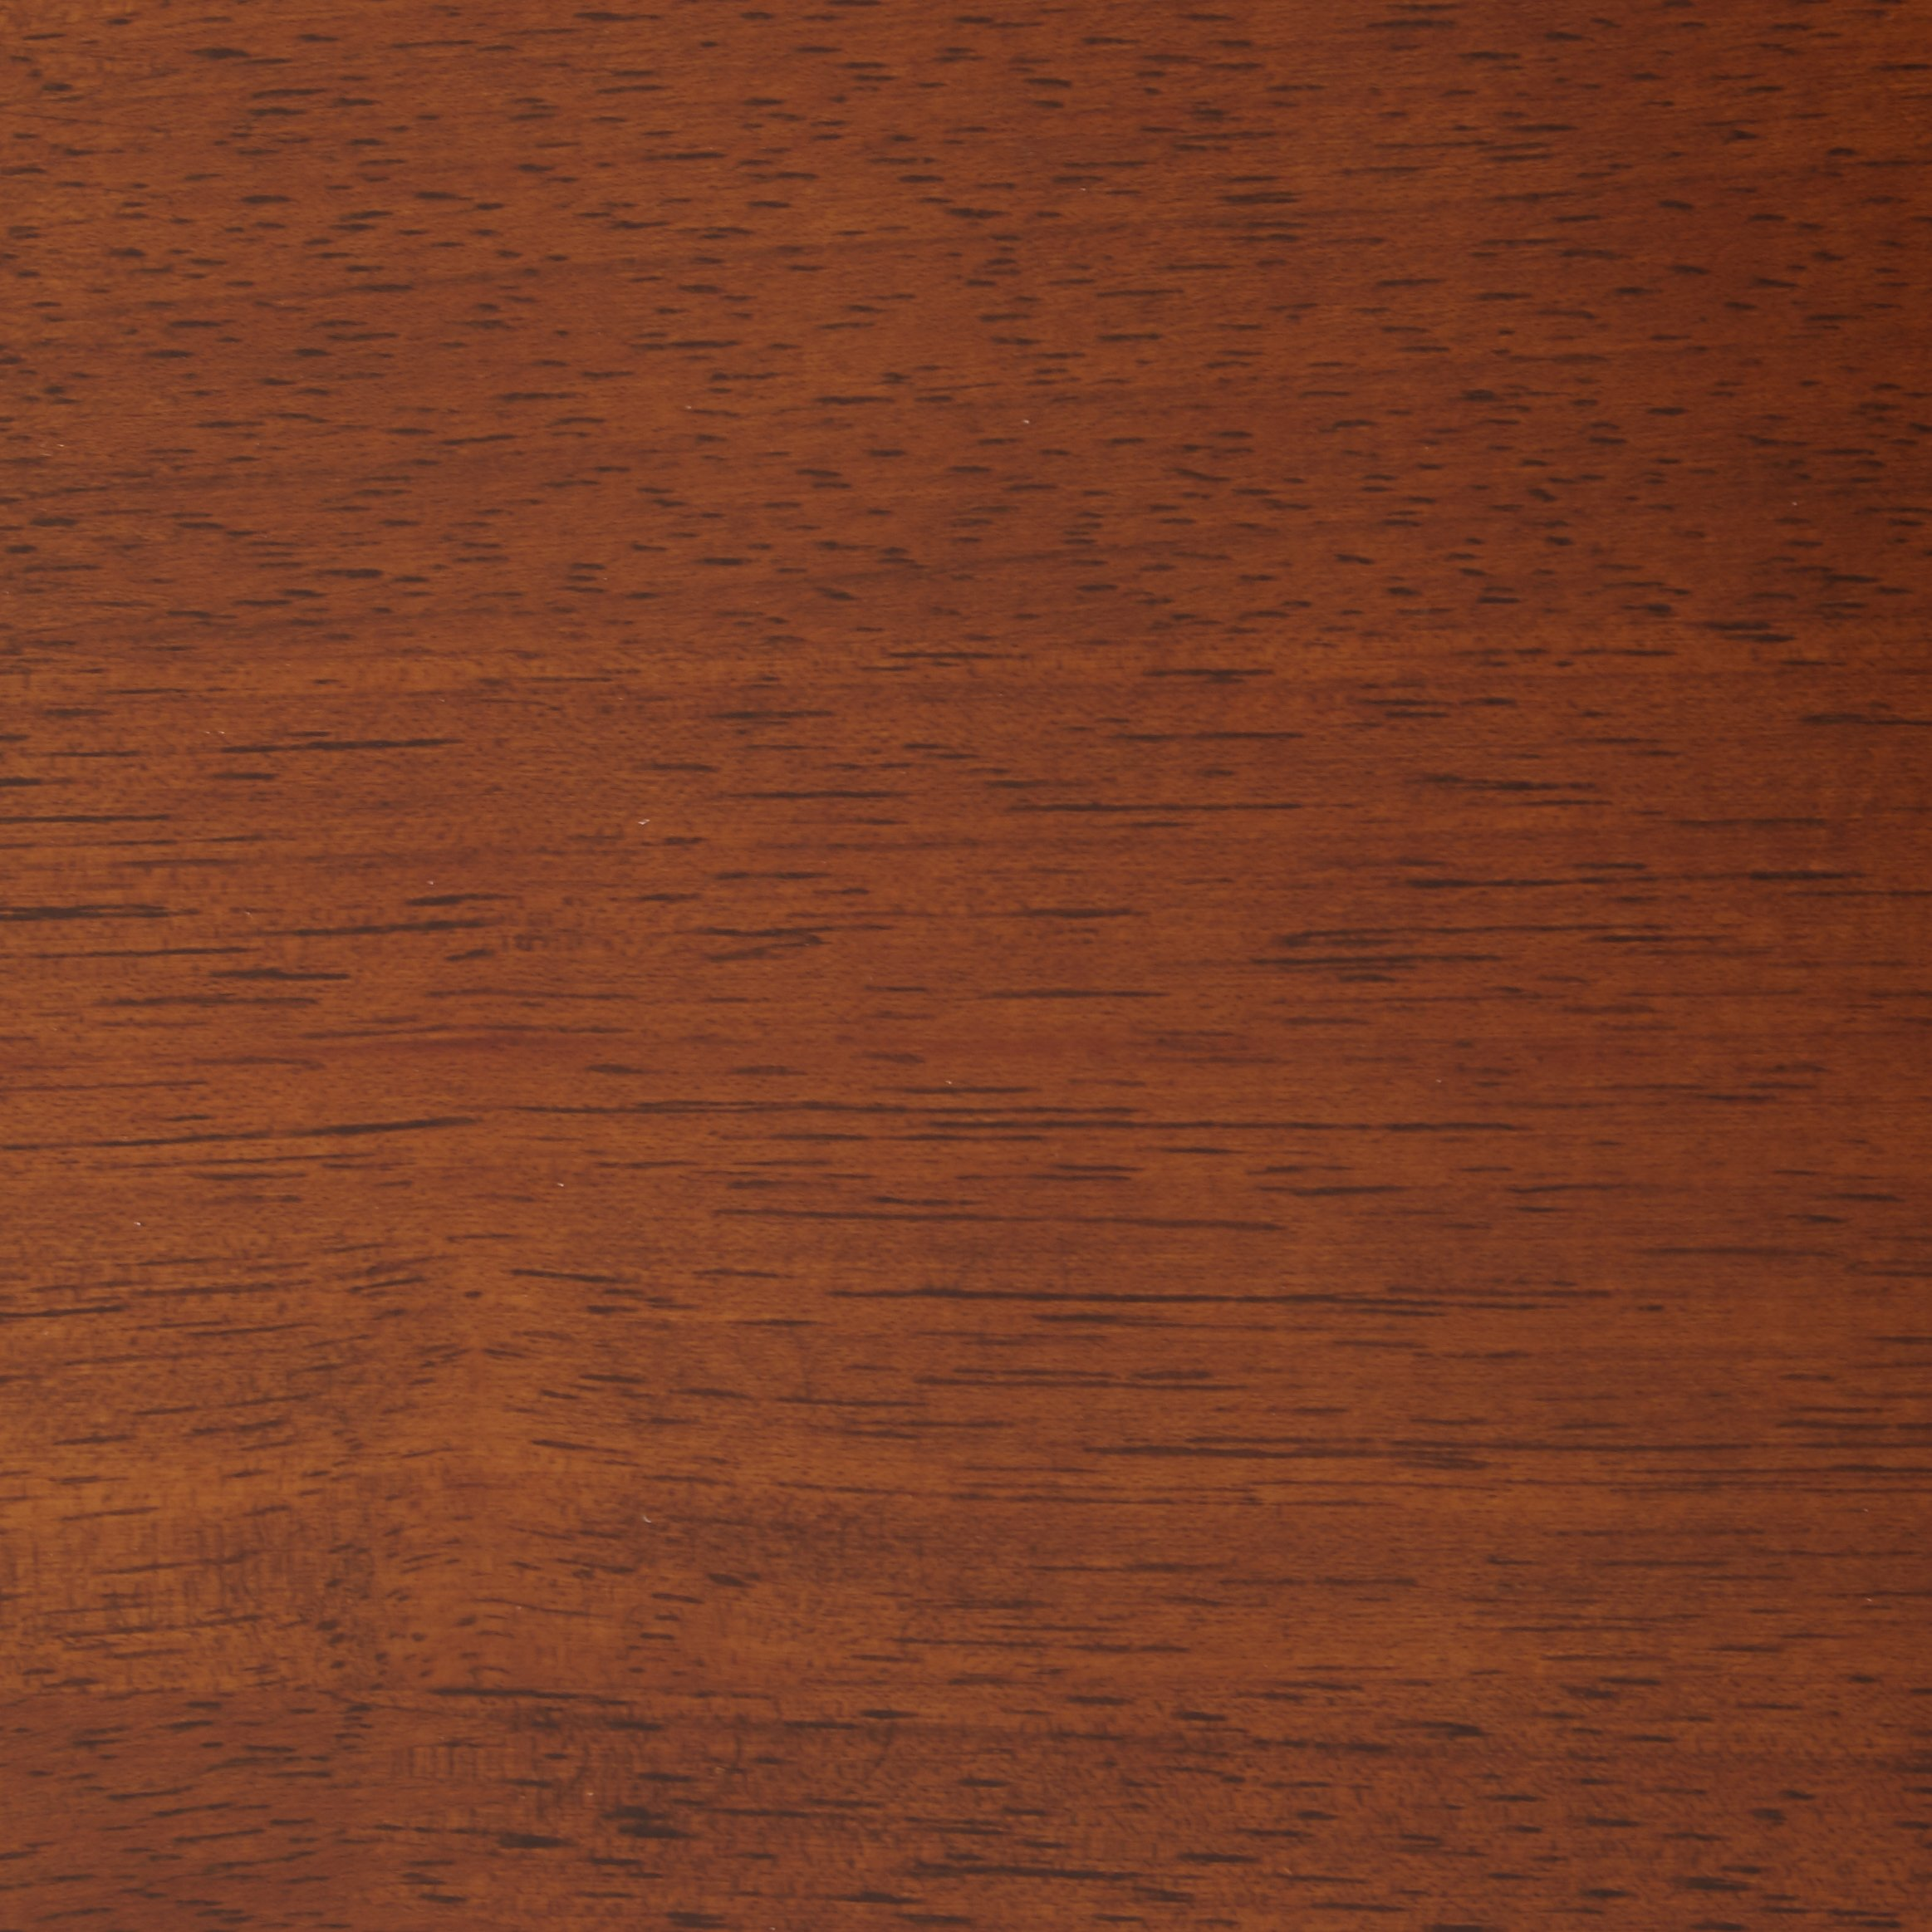 Coaster 103061 Home Furnishings Dining Table, Chestnut by Coaster Home Furnishings (Image #5)